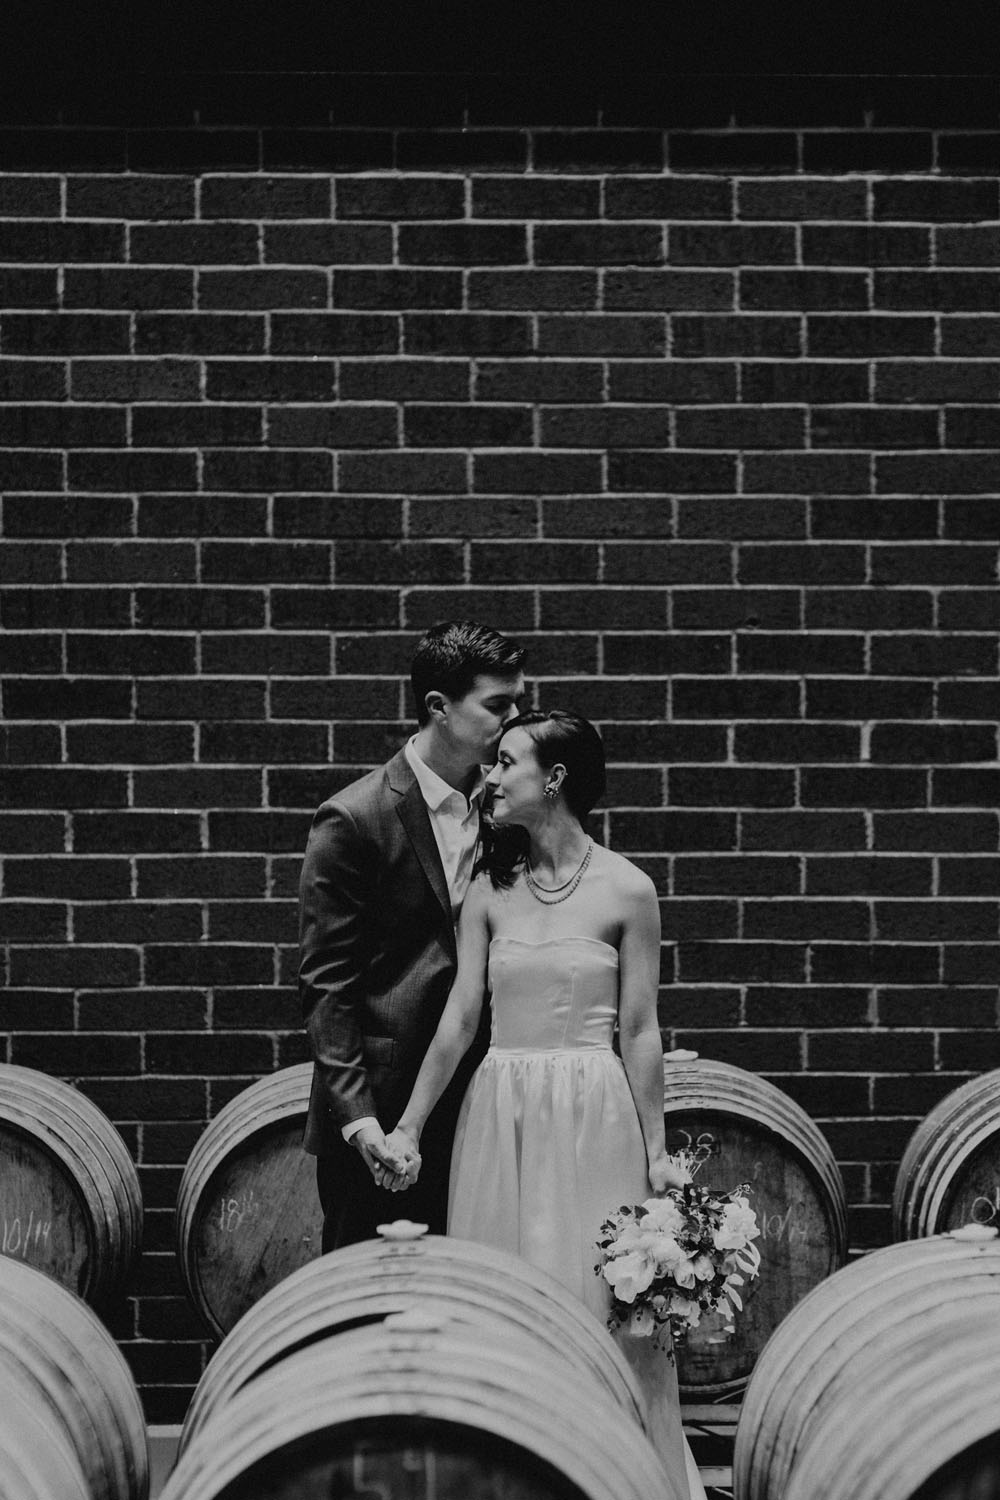 atlanta best wedding photographers engagement photographer elopement photography sweet water brewery 1063.jpg